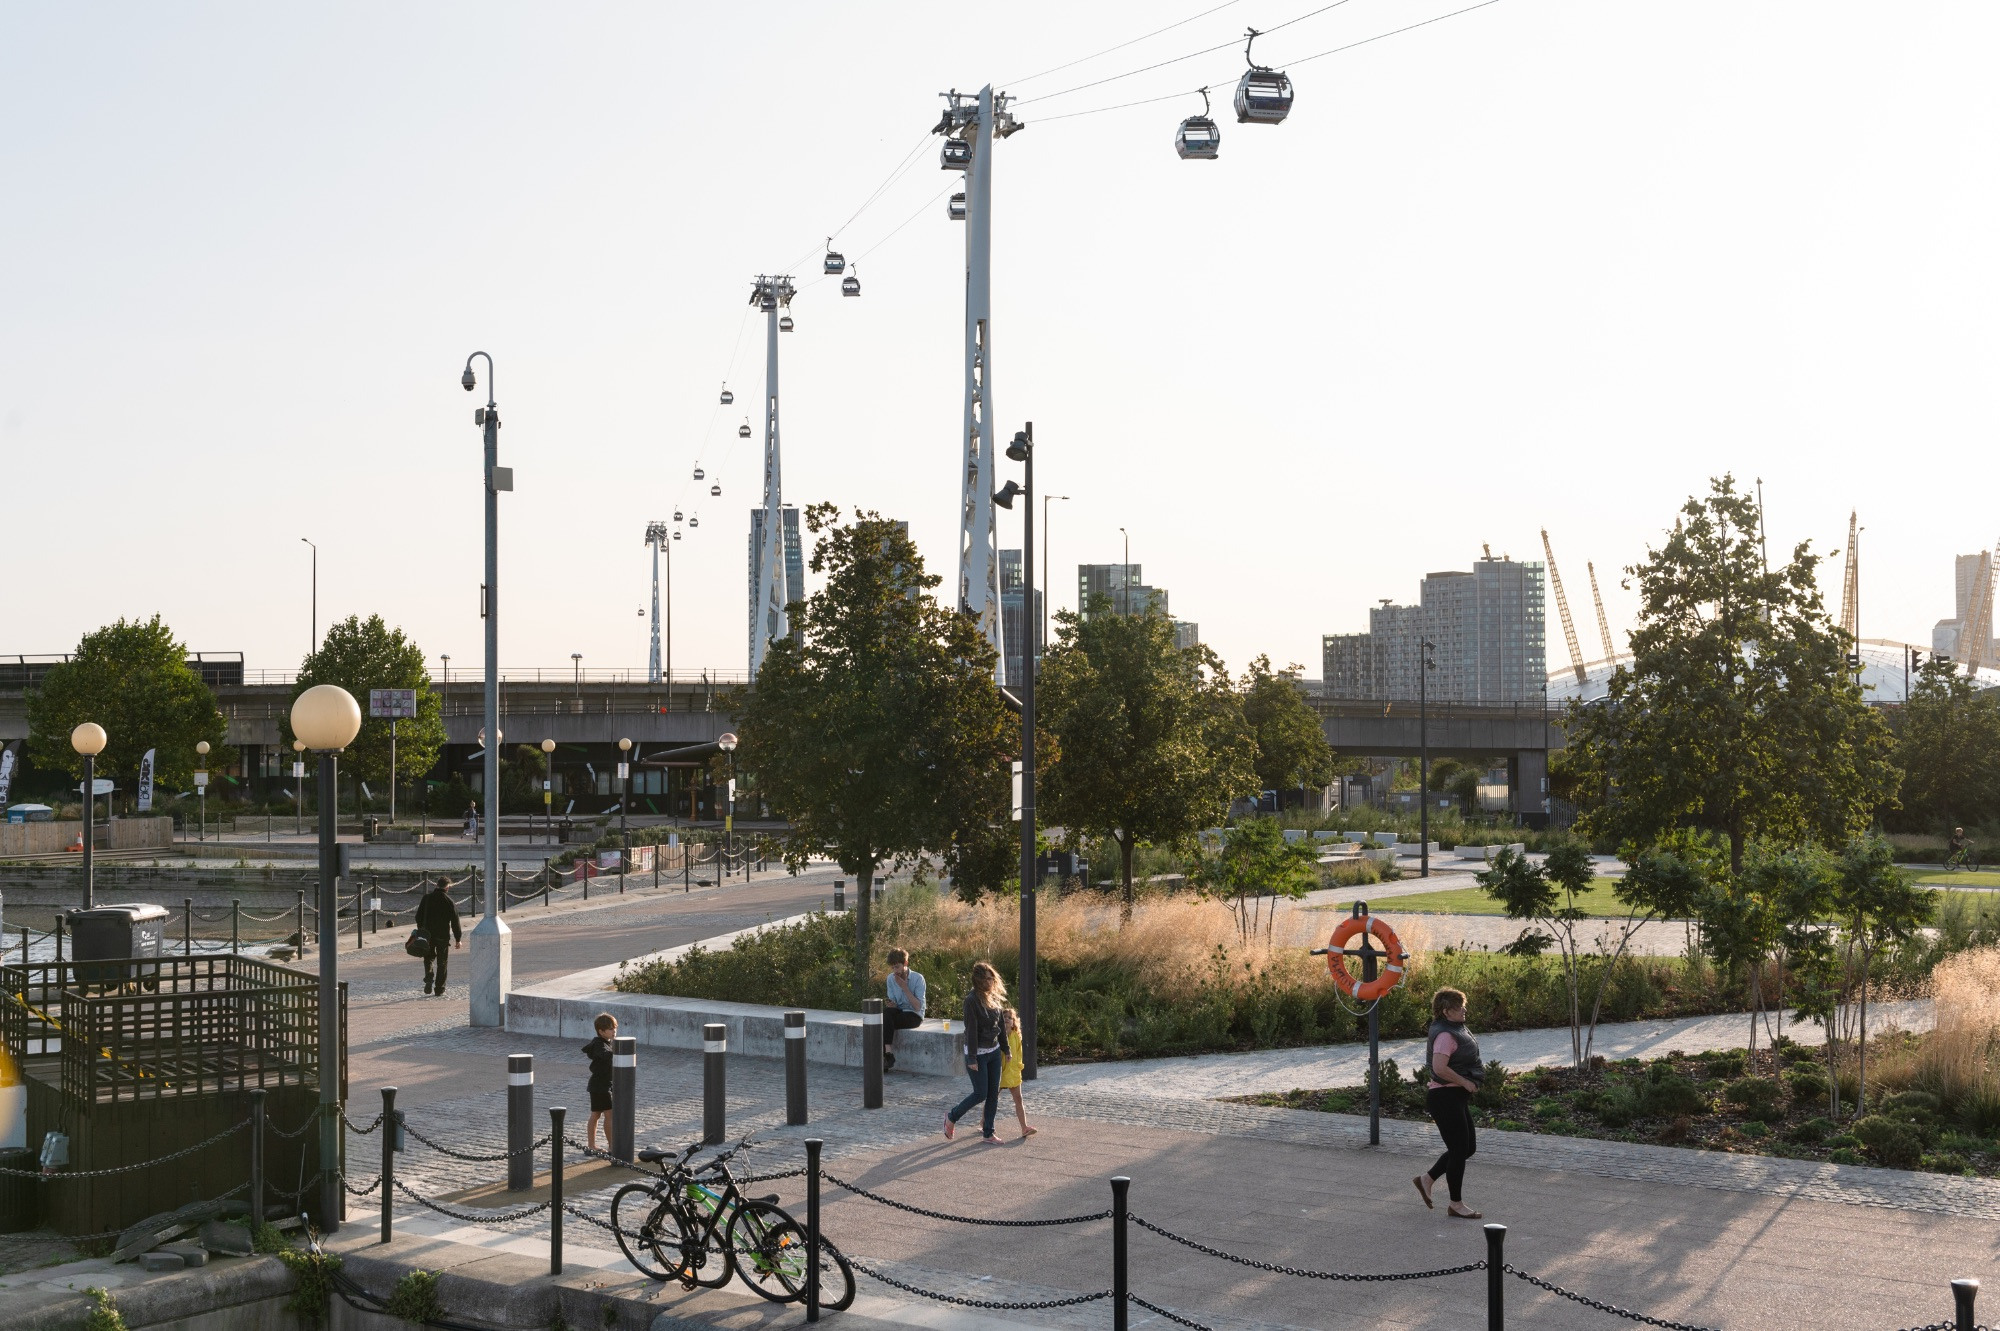 Sunset scene next to Royal Victoria Dock, with gardens and the cable car running overhead